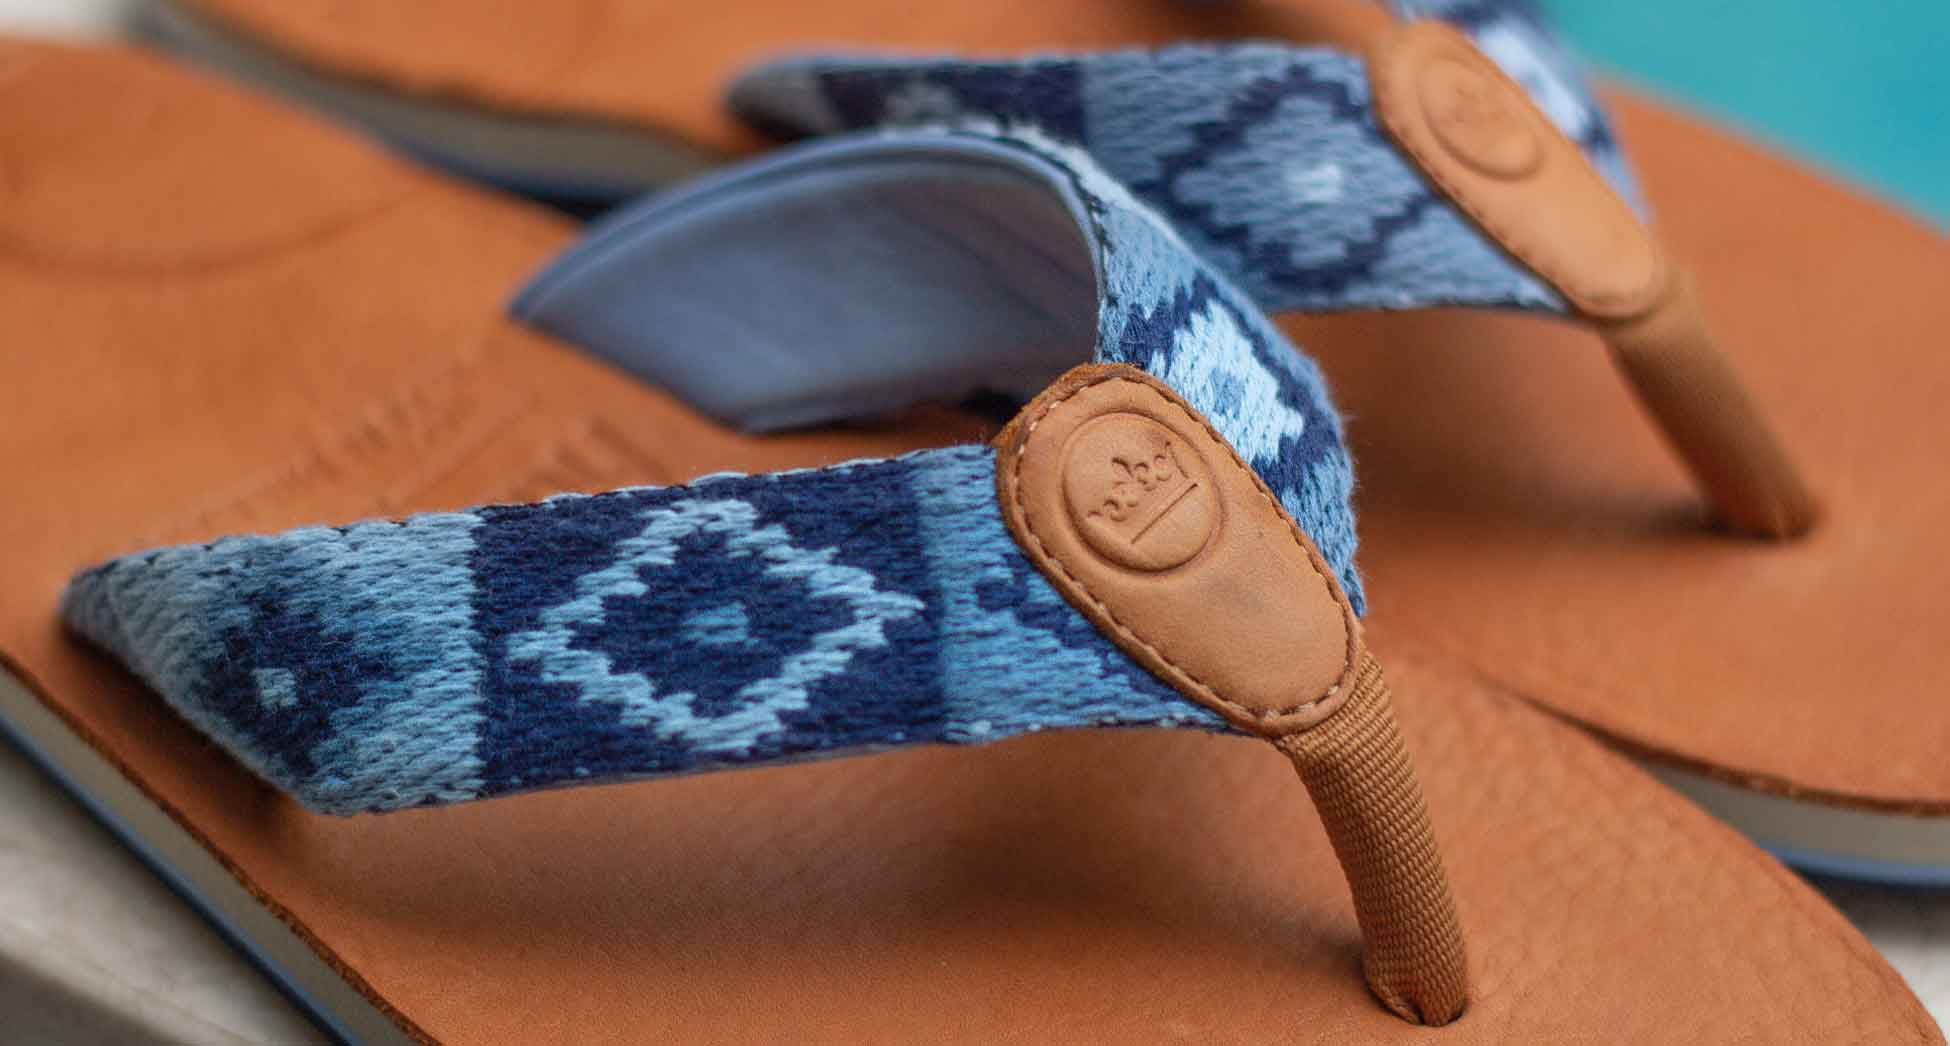 a close up shot of HM x Peter Millar flip flops with vegetable-tanned leather soles, blue woven straps with memory foam in the toe post and straps